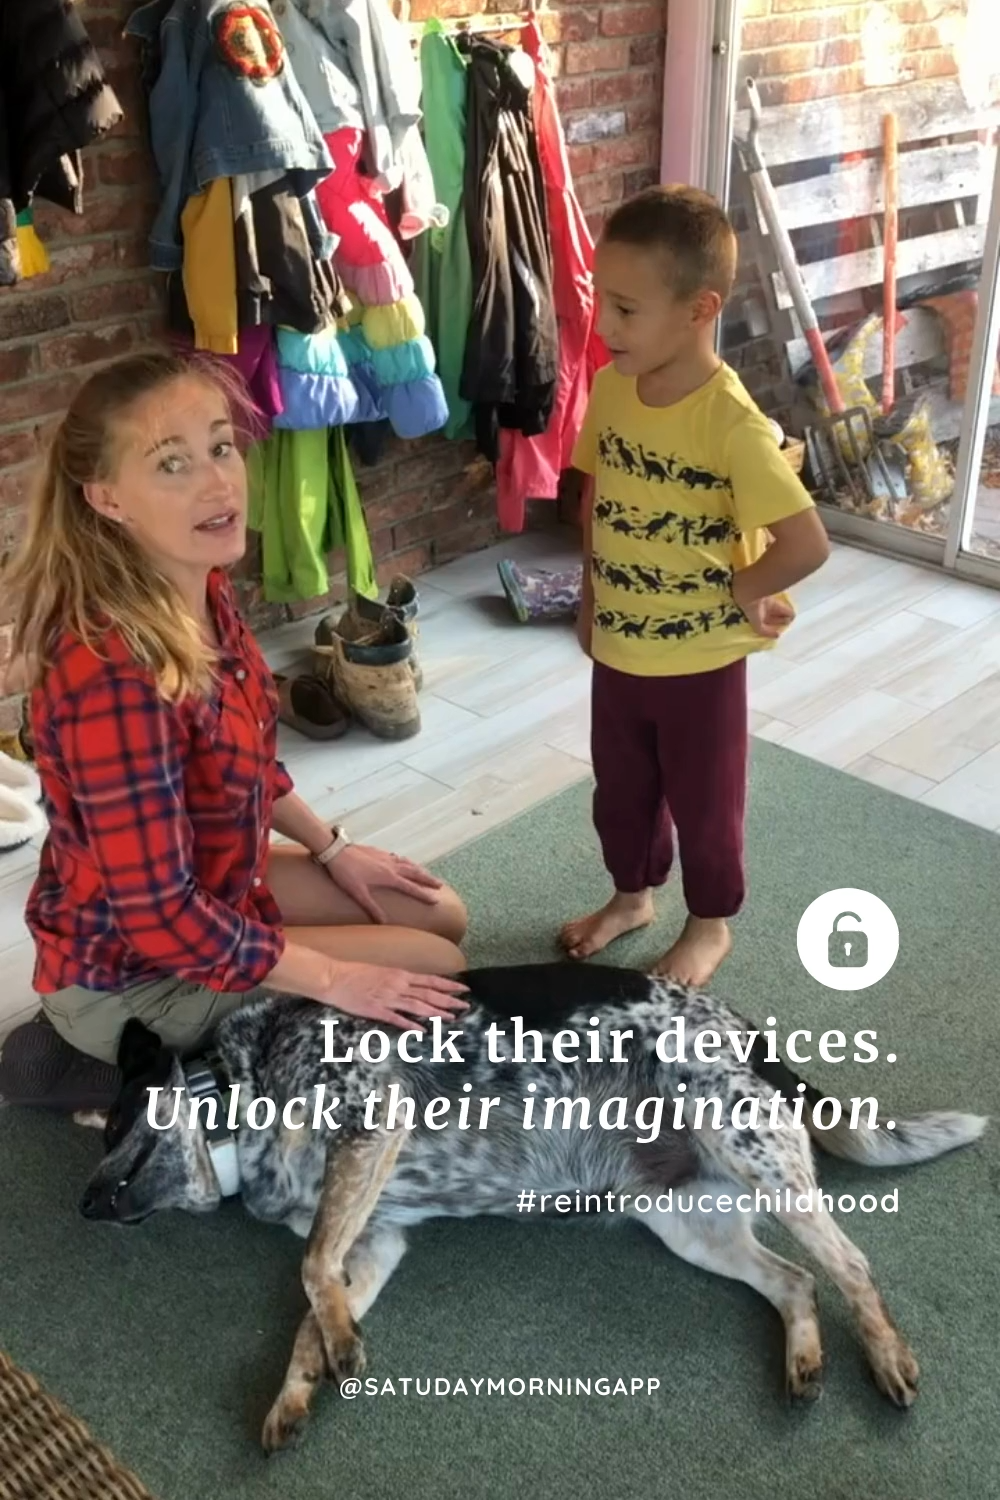 Reintroduce childhood by playing make-believe with your kids. There's no need for screens when their imagination is taking charge. #reintroducechildhood #saturdaymorningapp #parentswinning #parentingtips #parenting101 #parenting #parenthood #motherhood #momlife #dadlife #familytime